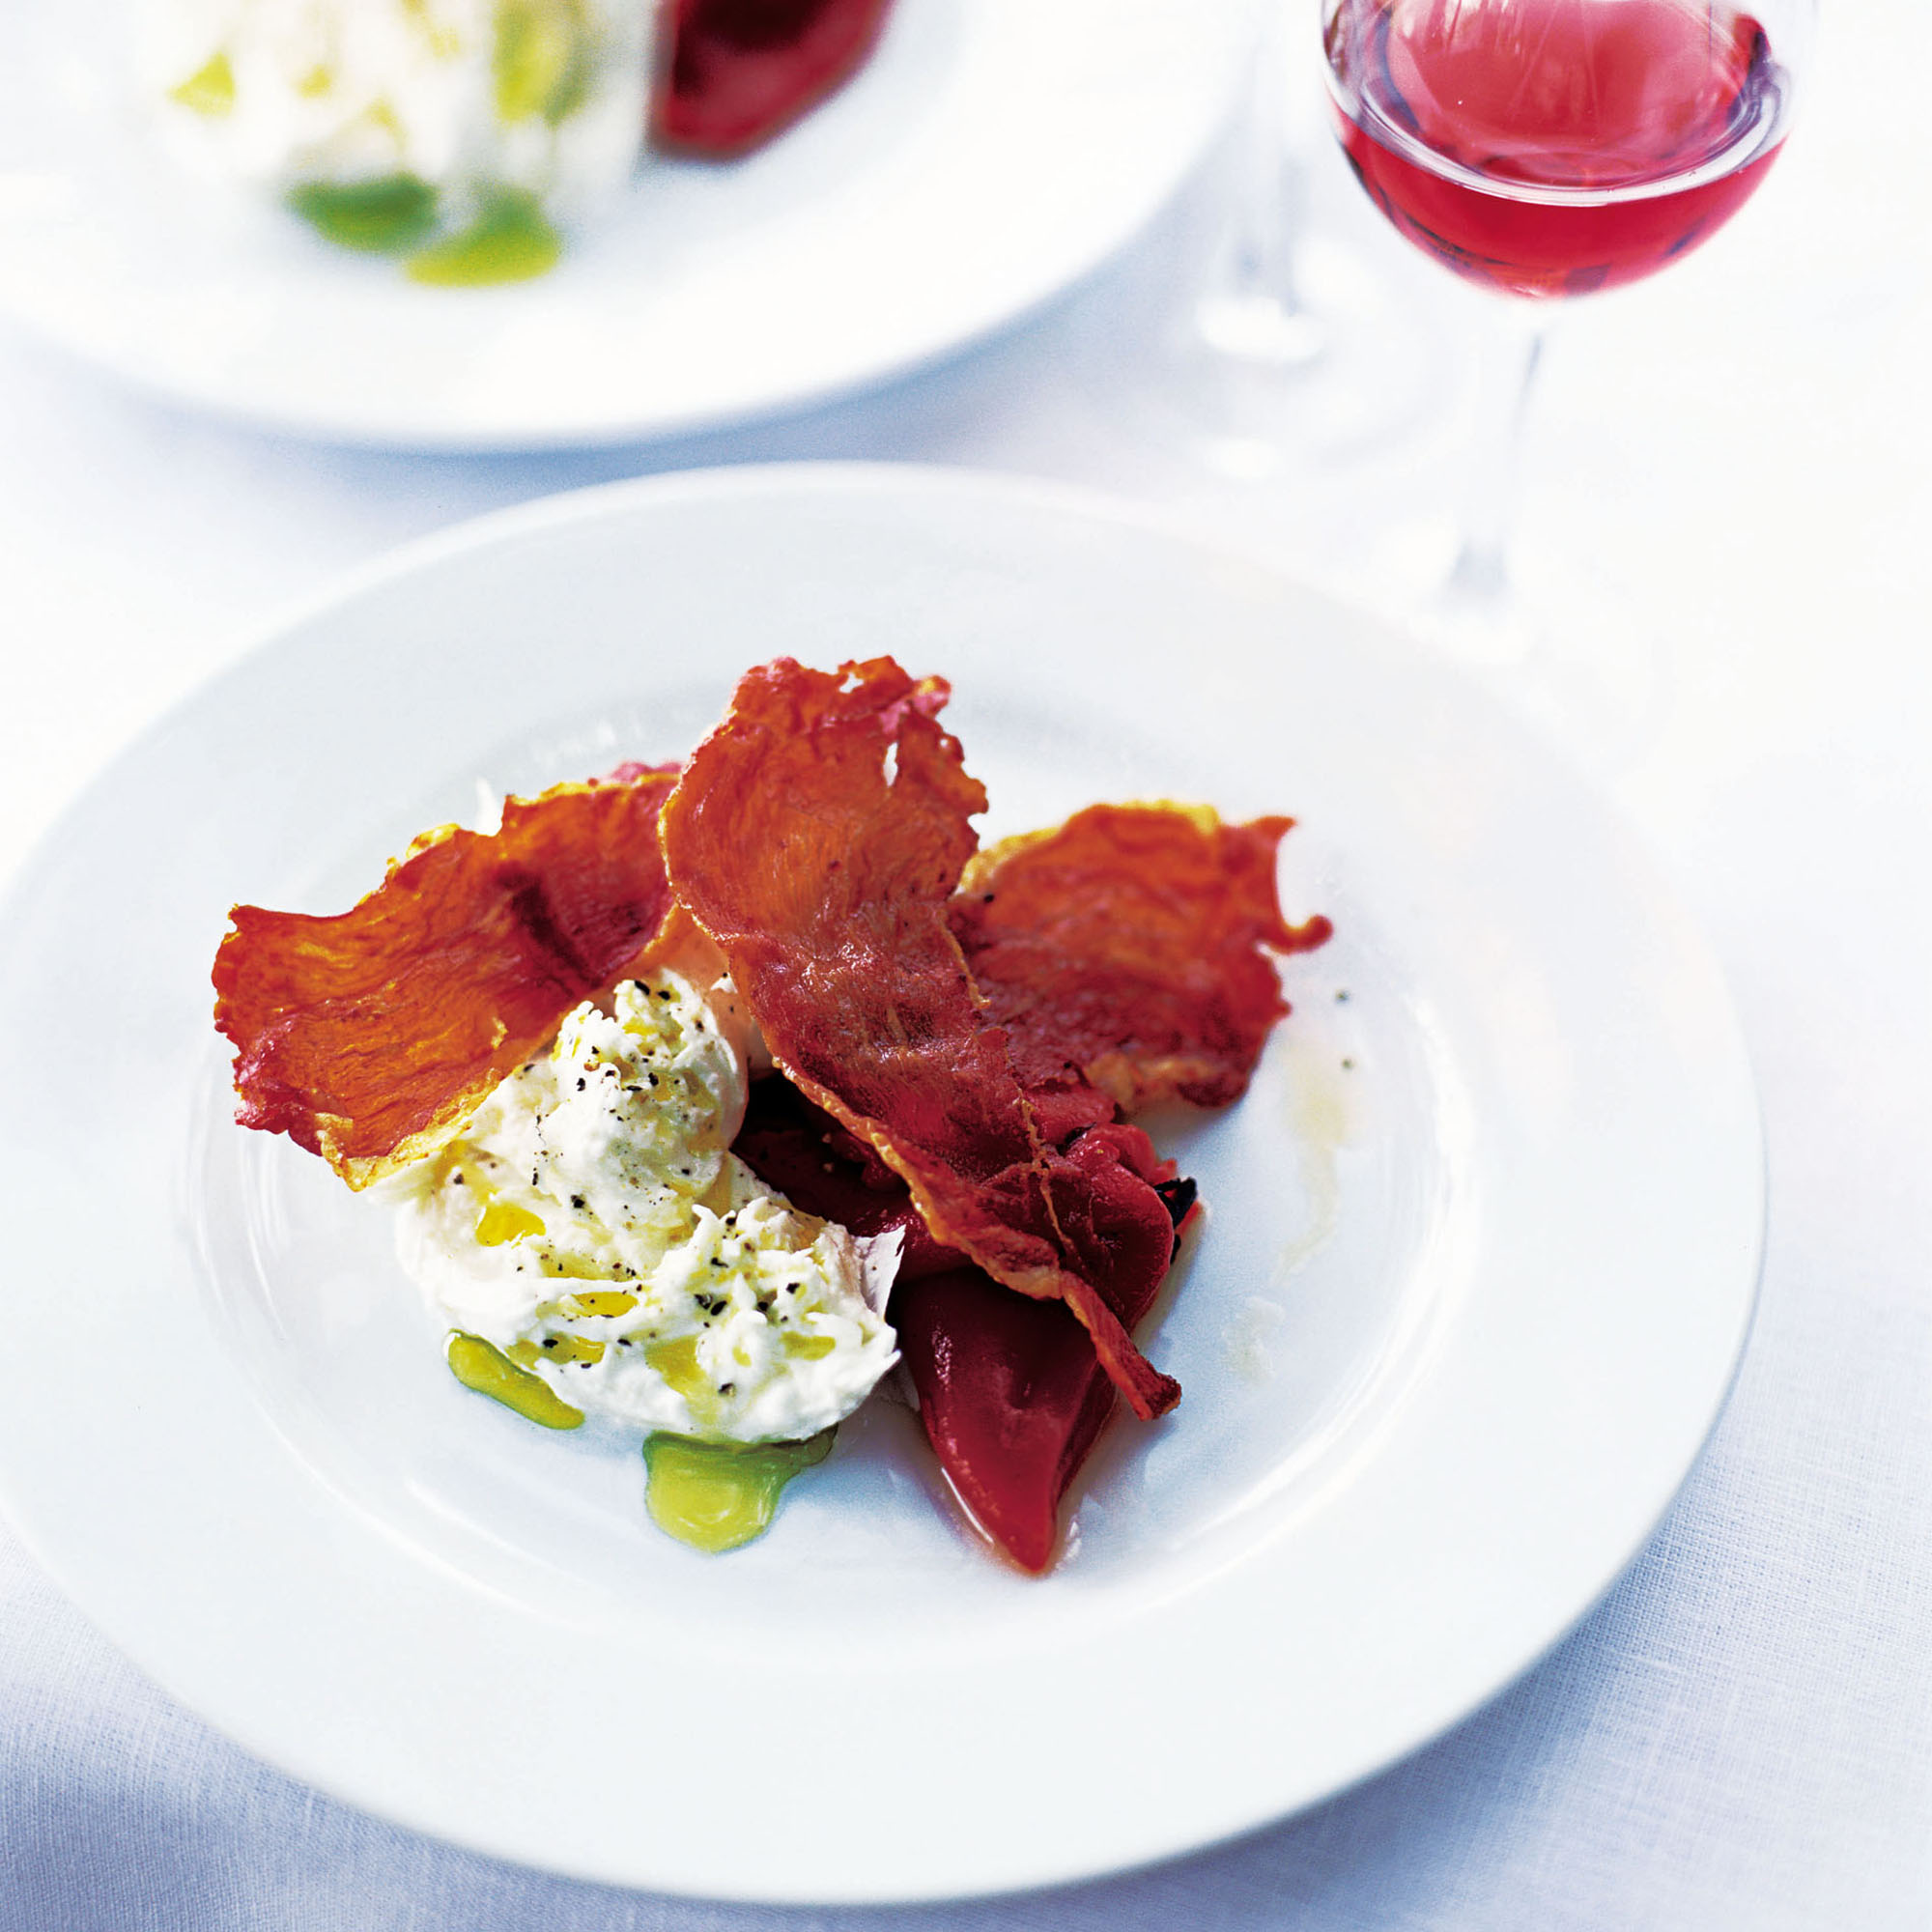 Buffalo Mozzarella With Crispy Serrano Ham And Roasted Peppers Lunch Recipes Woman Home